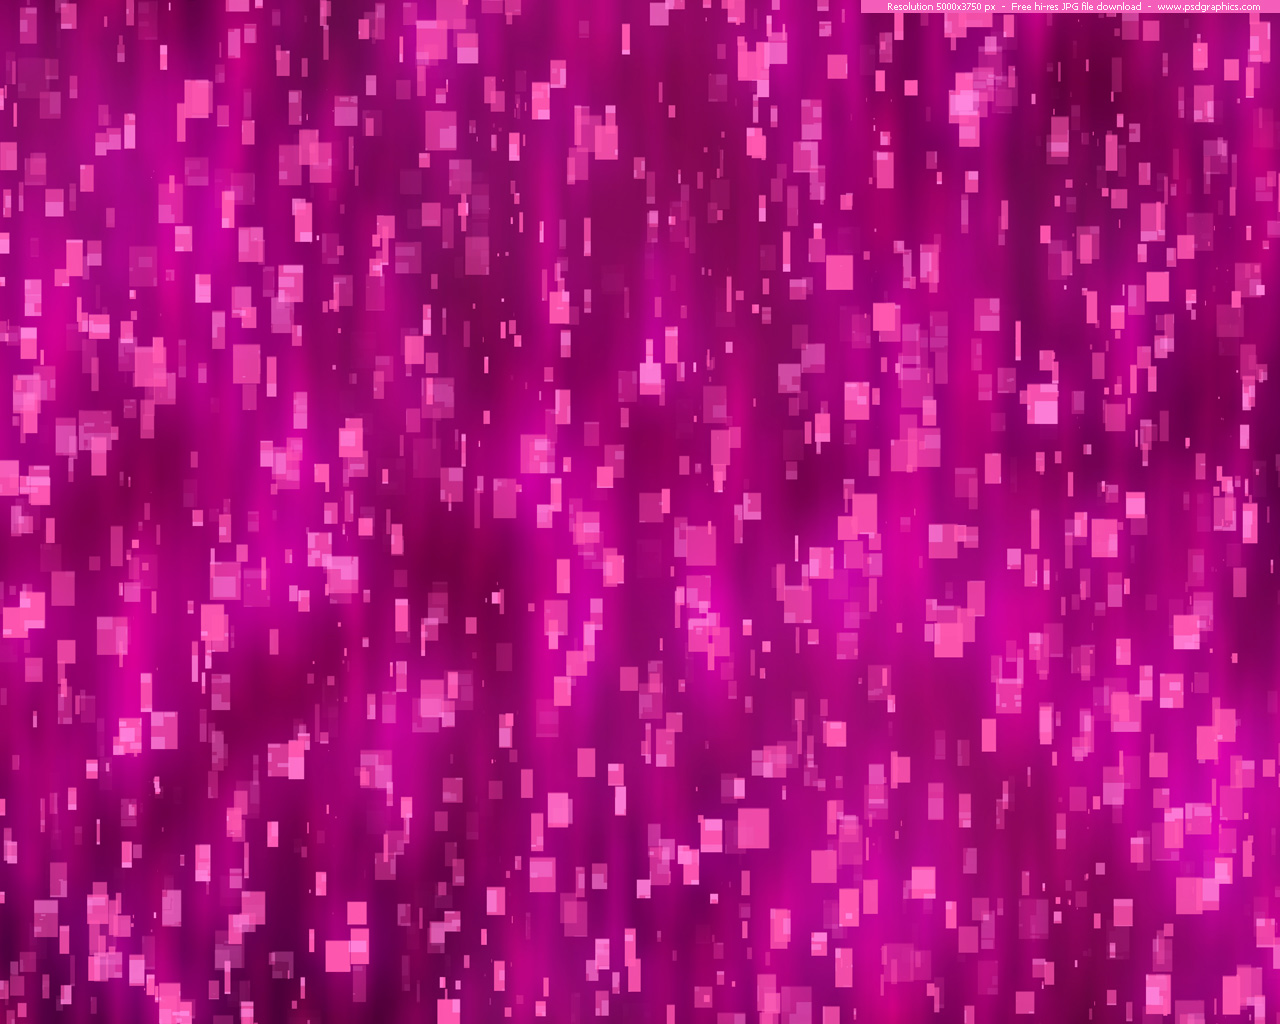 ... keywords pink blurry lights abstract lights photoshop effects pink